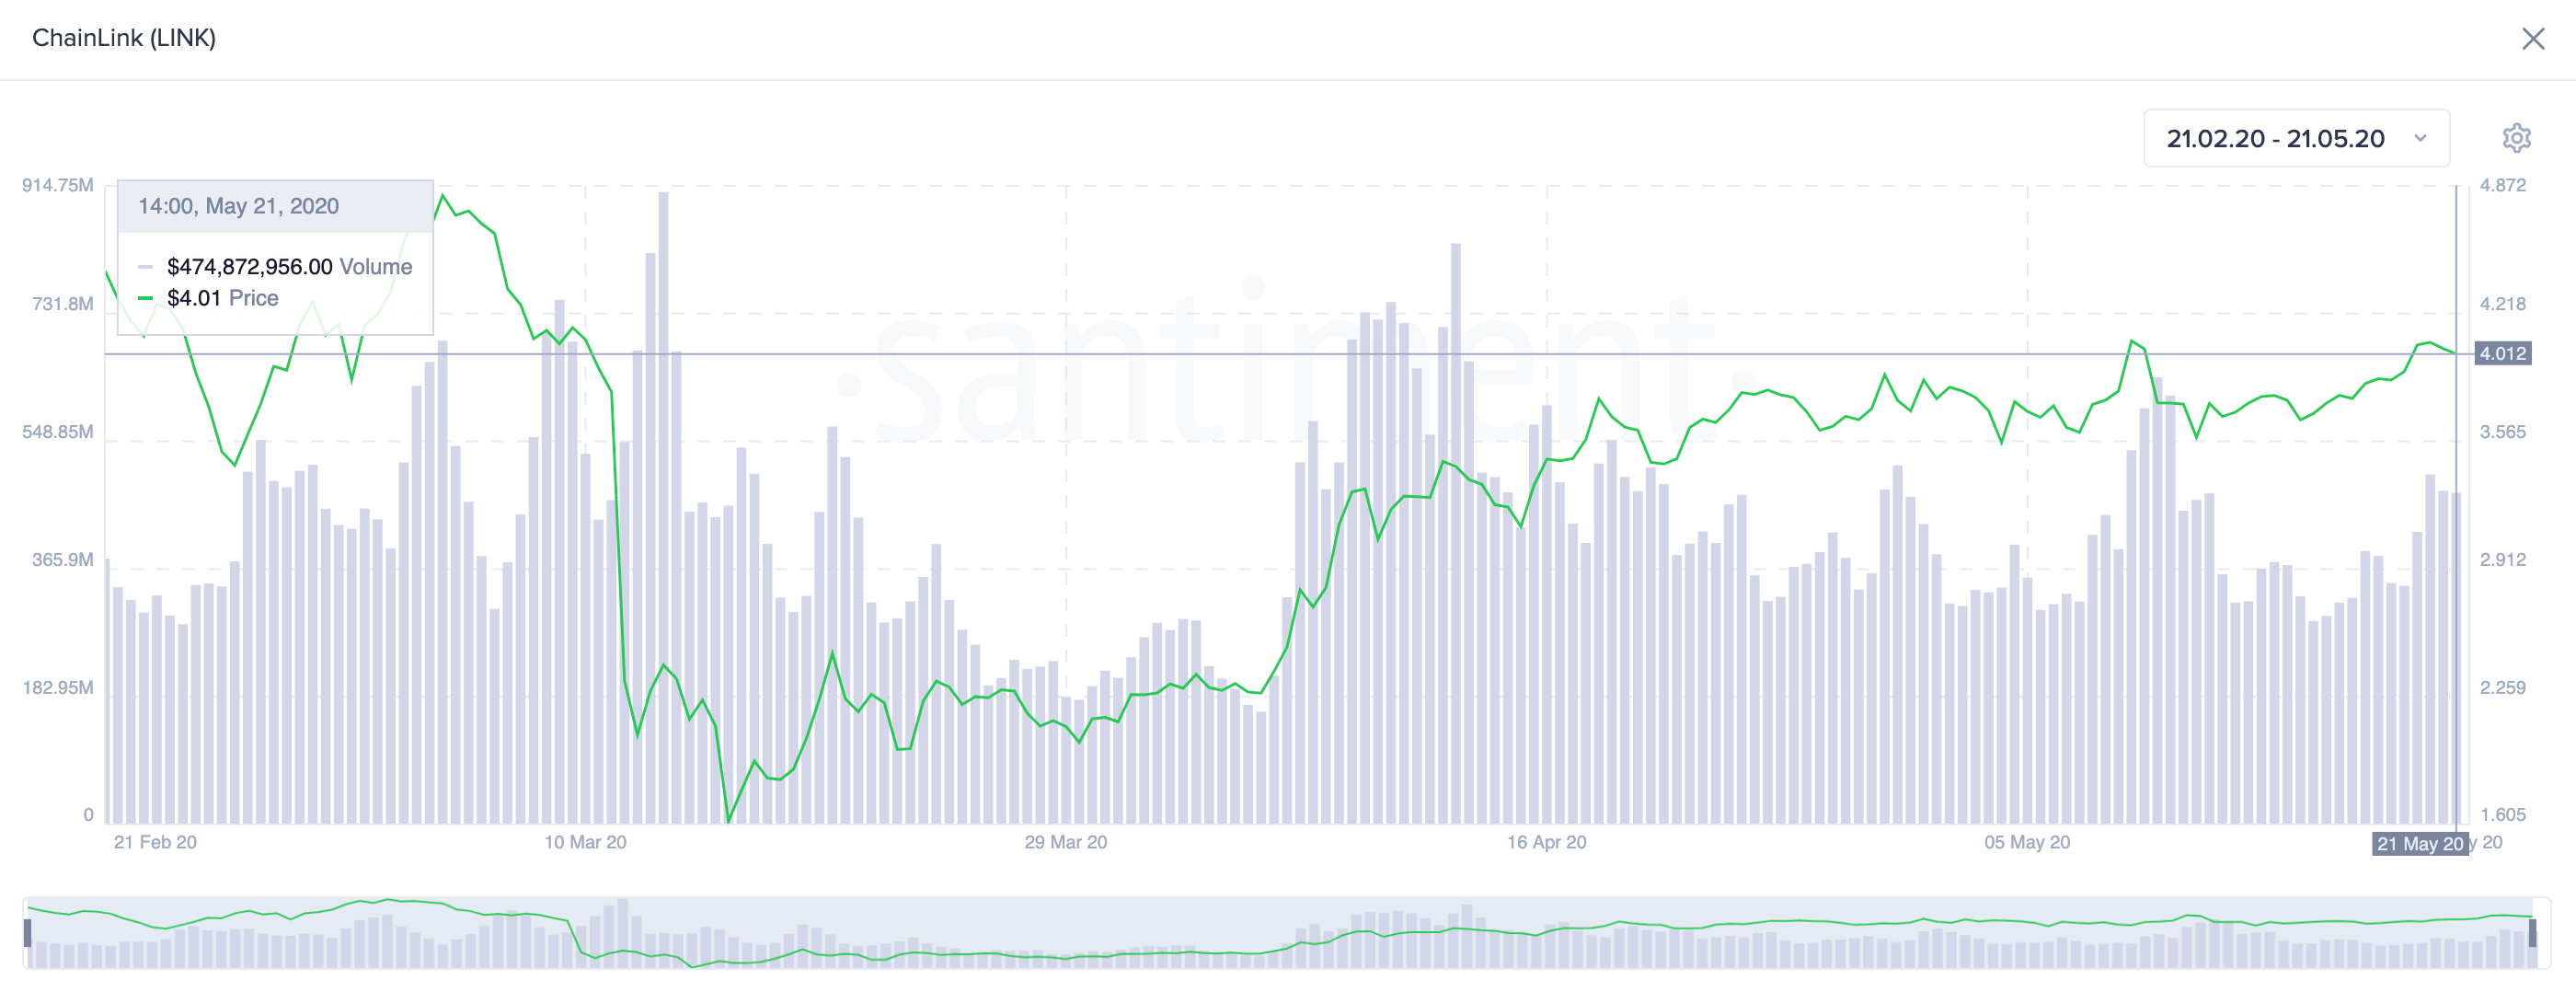 Chainlink's On-Chain Volume. (Source: Santiment)